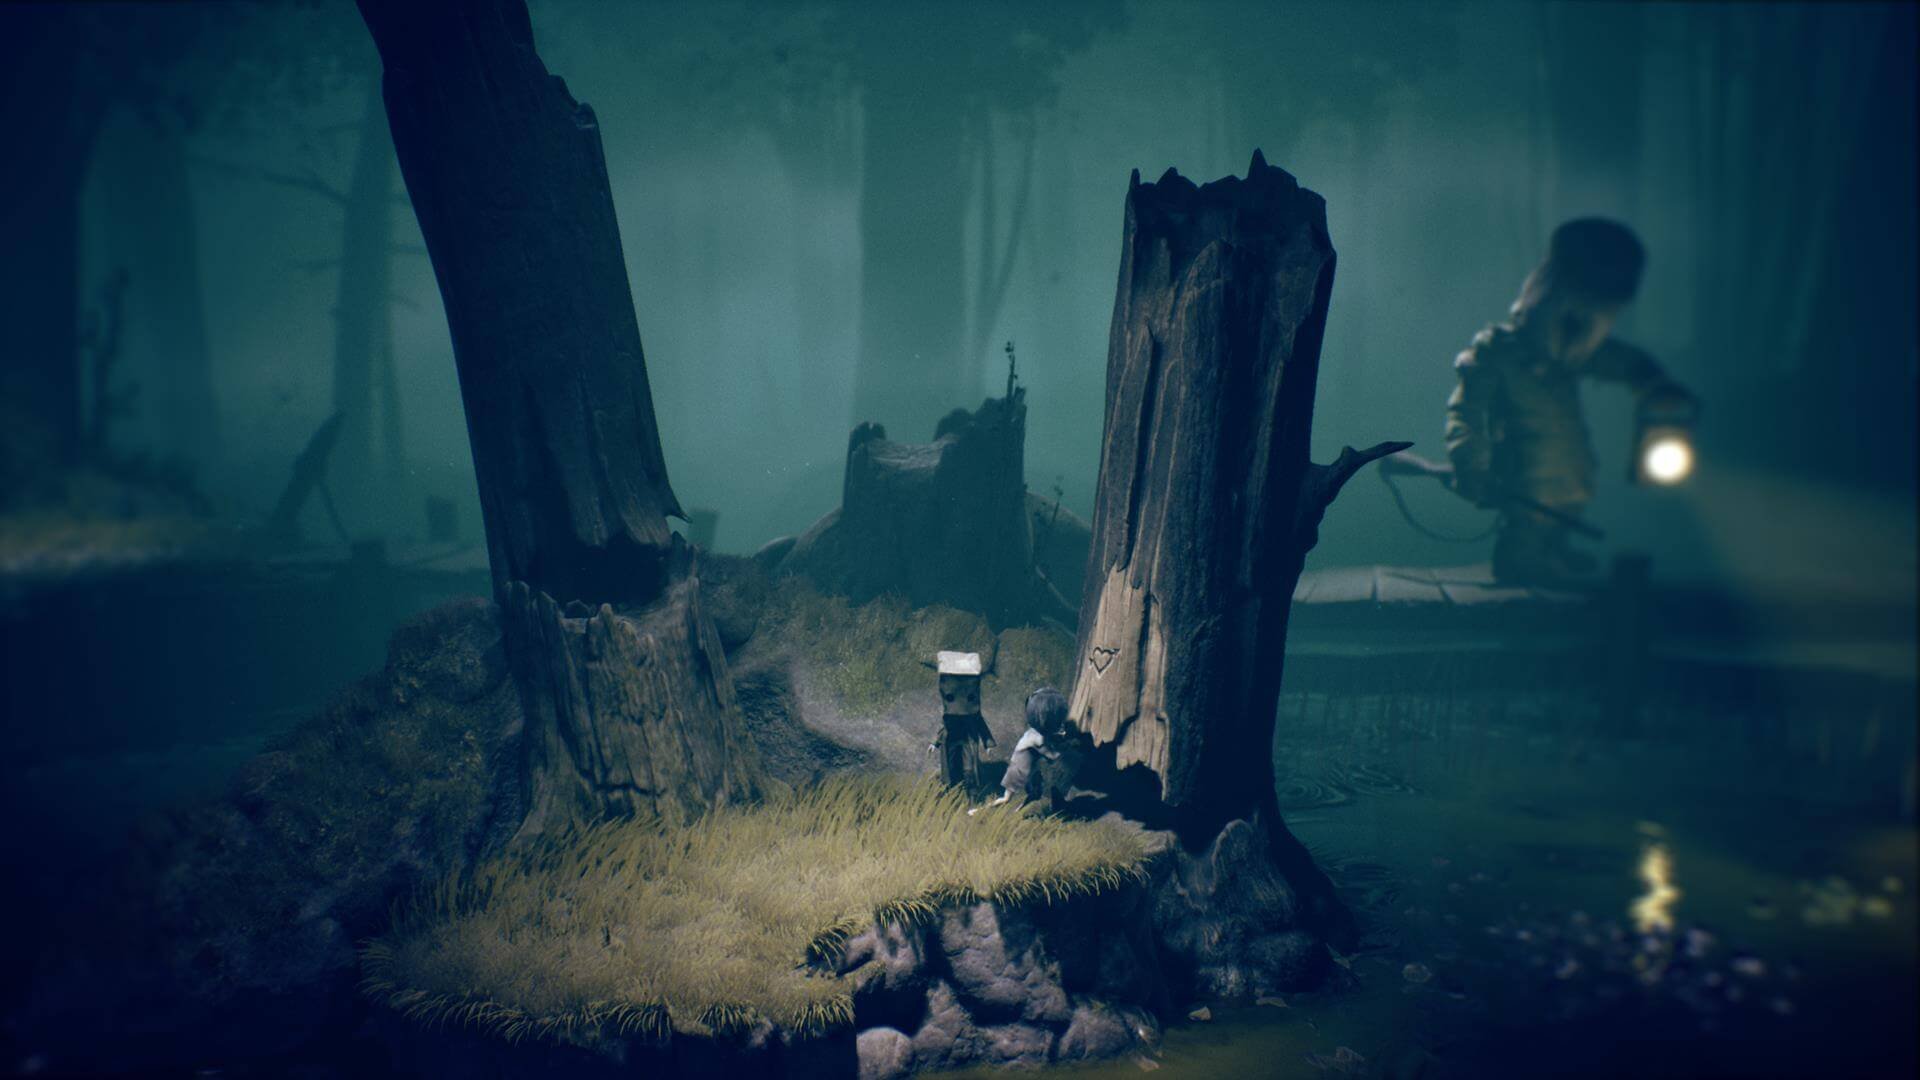 Little Nightmares 2 Reaches One Million Sales in its First Month